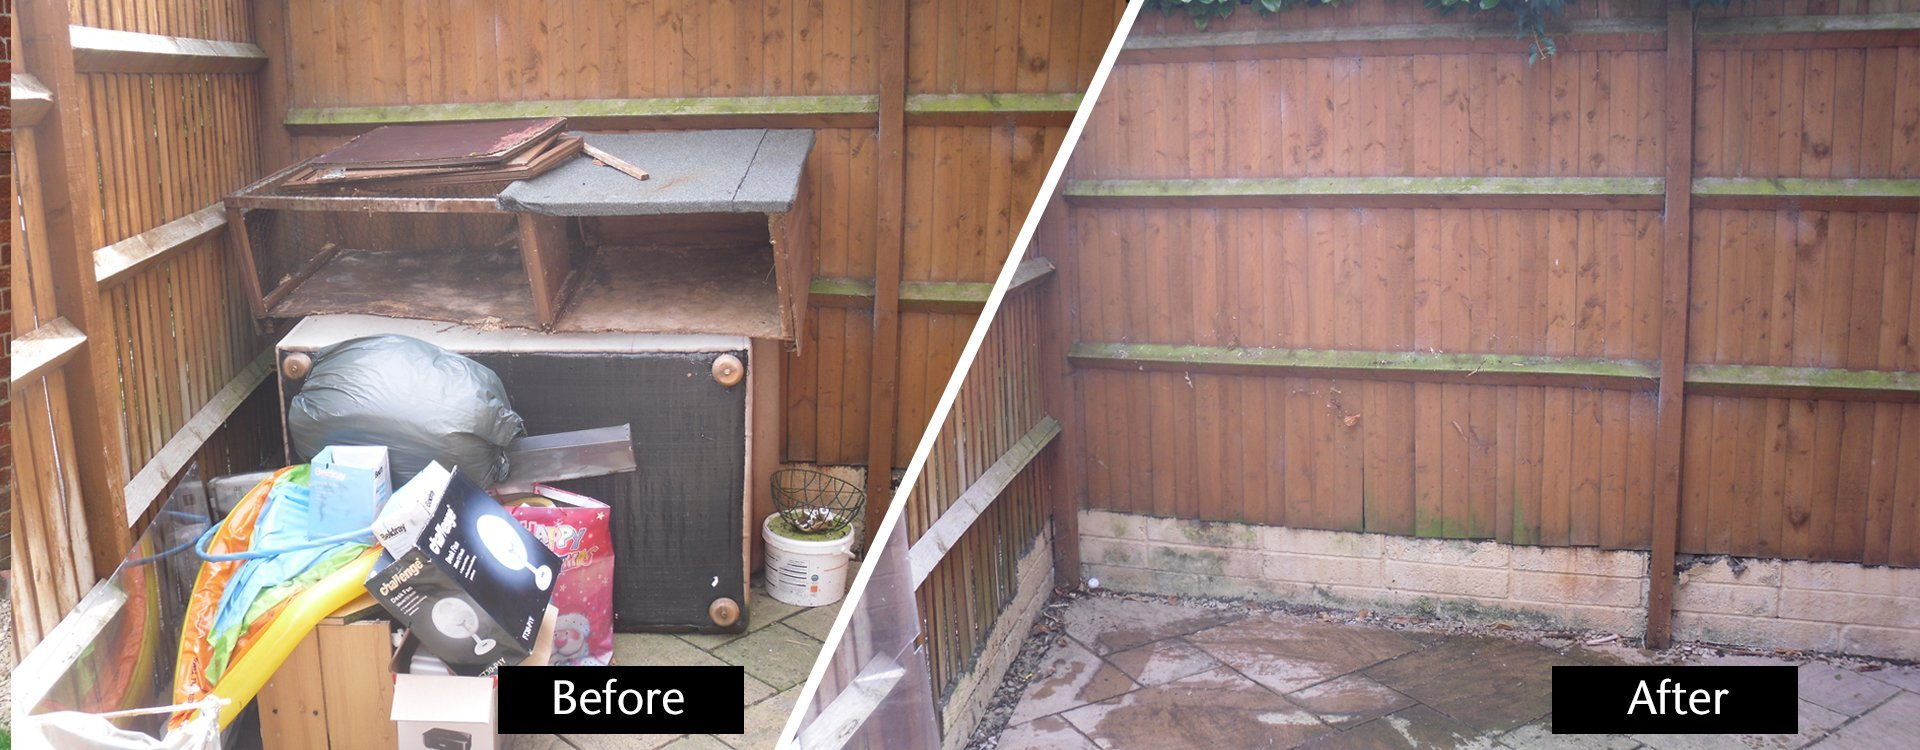 rubbish before and after disposal